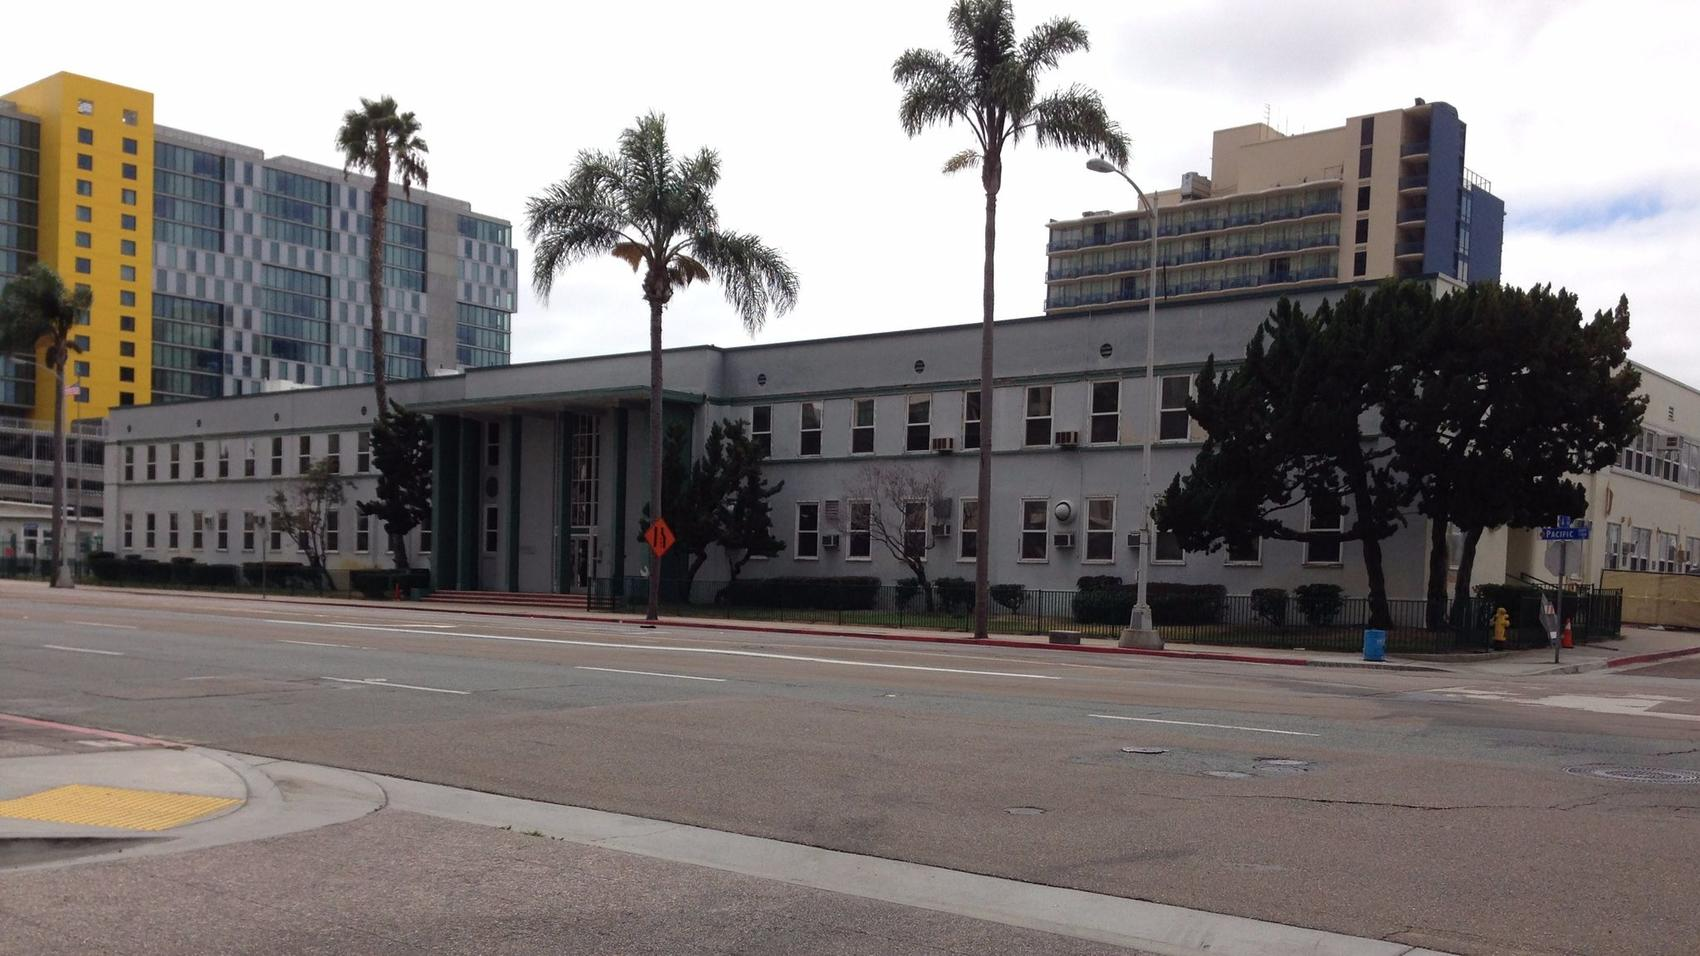 The Navy Facilities Engineering Command offices at 1220 Pacific Highway date back to the 1940s. (Roger Showley/UT)